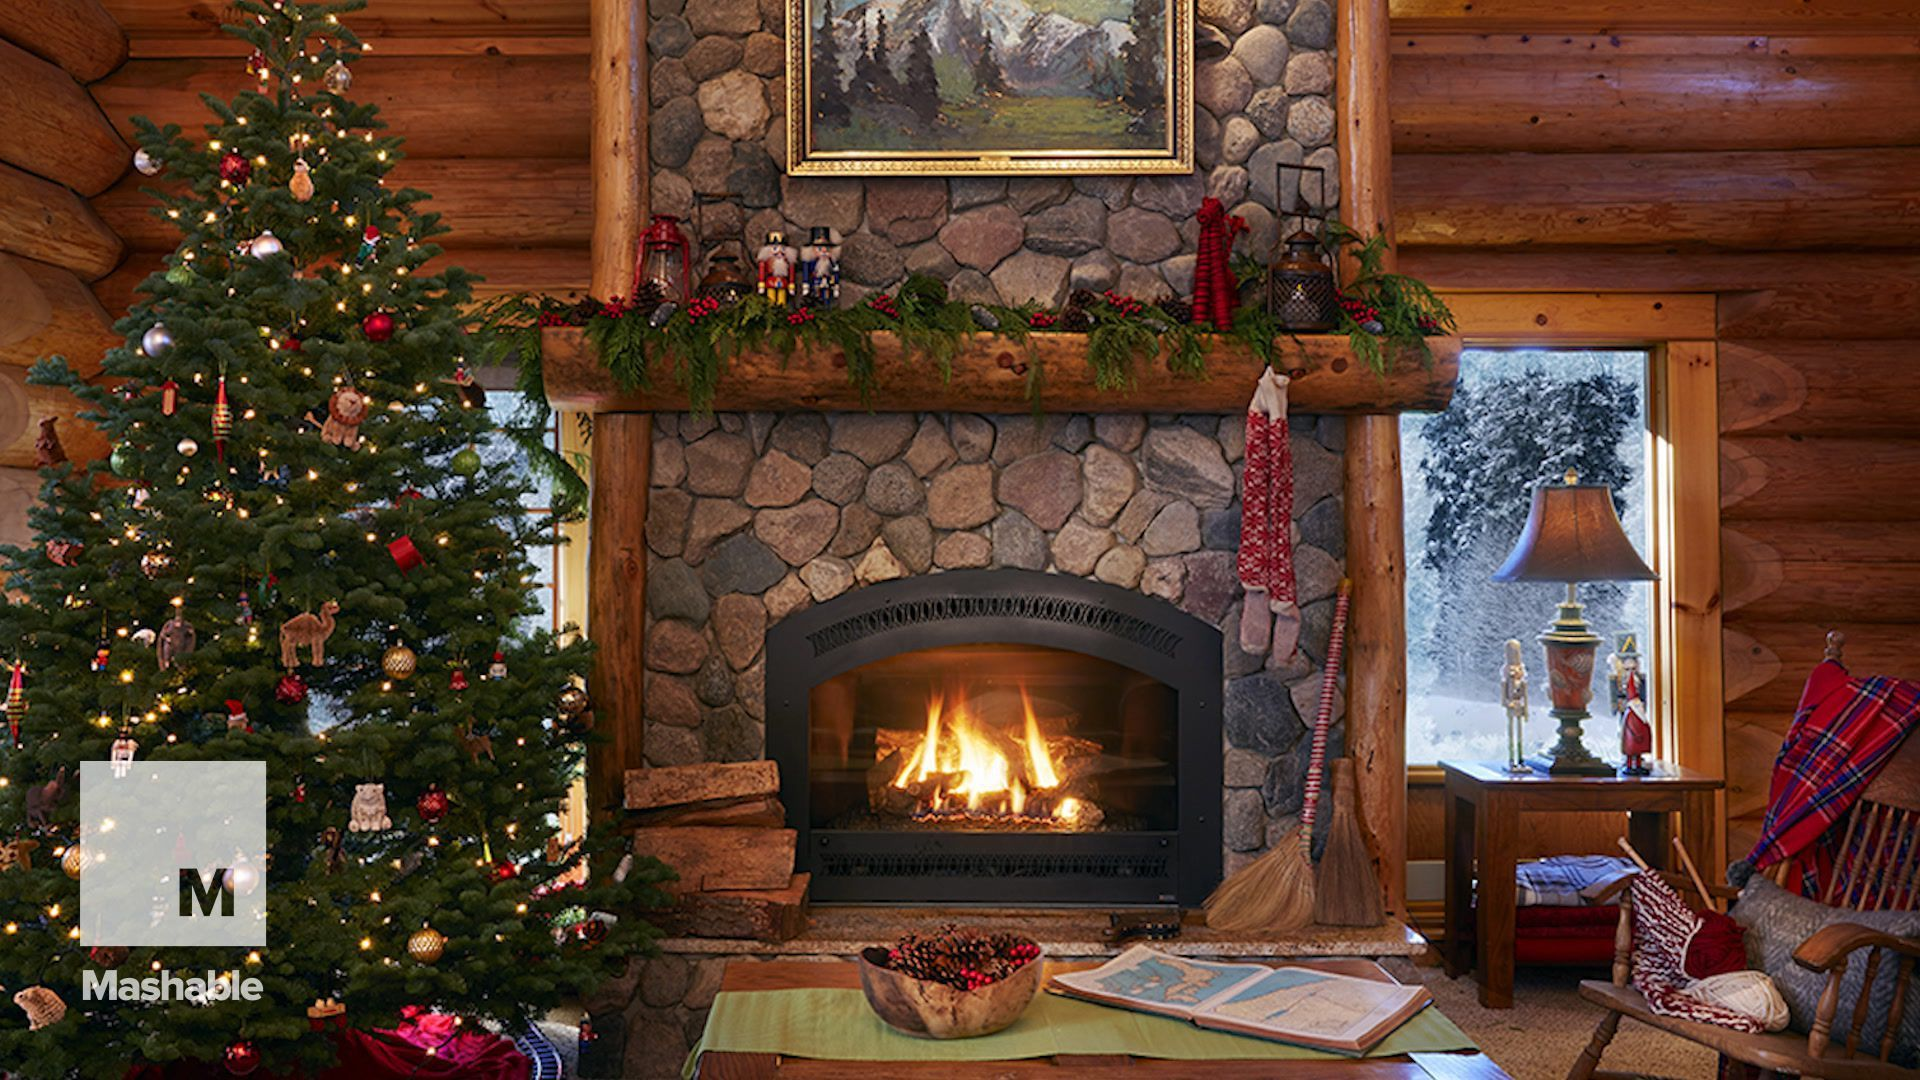 Christmas Fireplace Comfort wallpaper picture hd